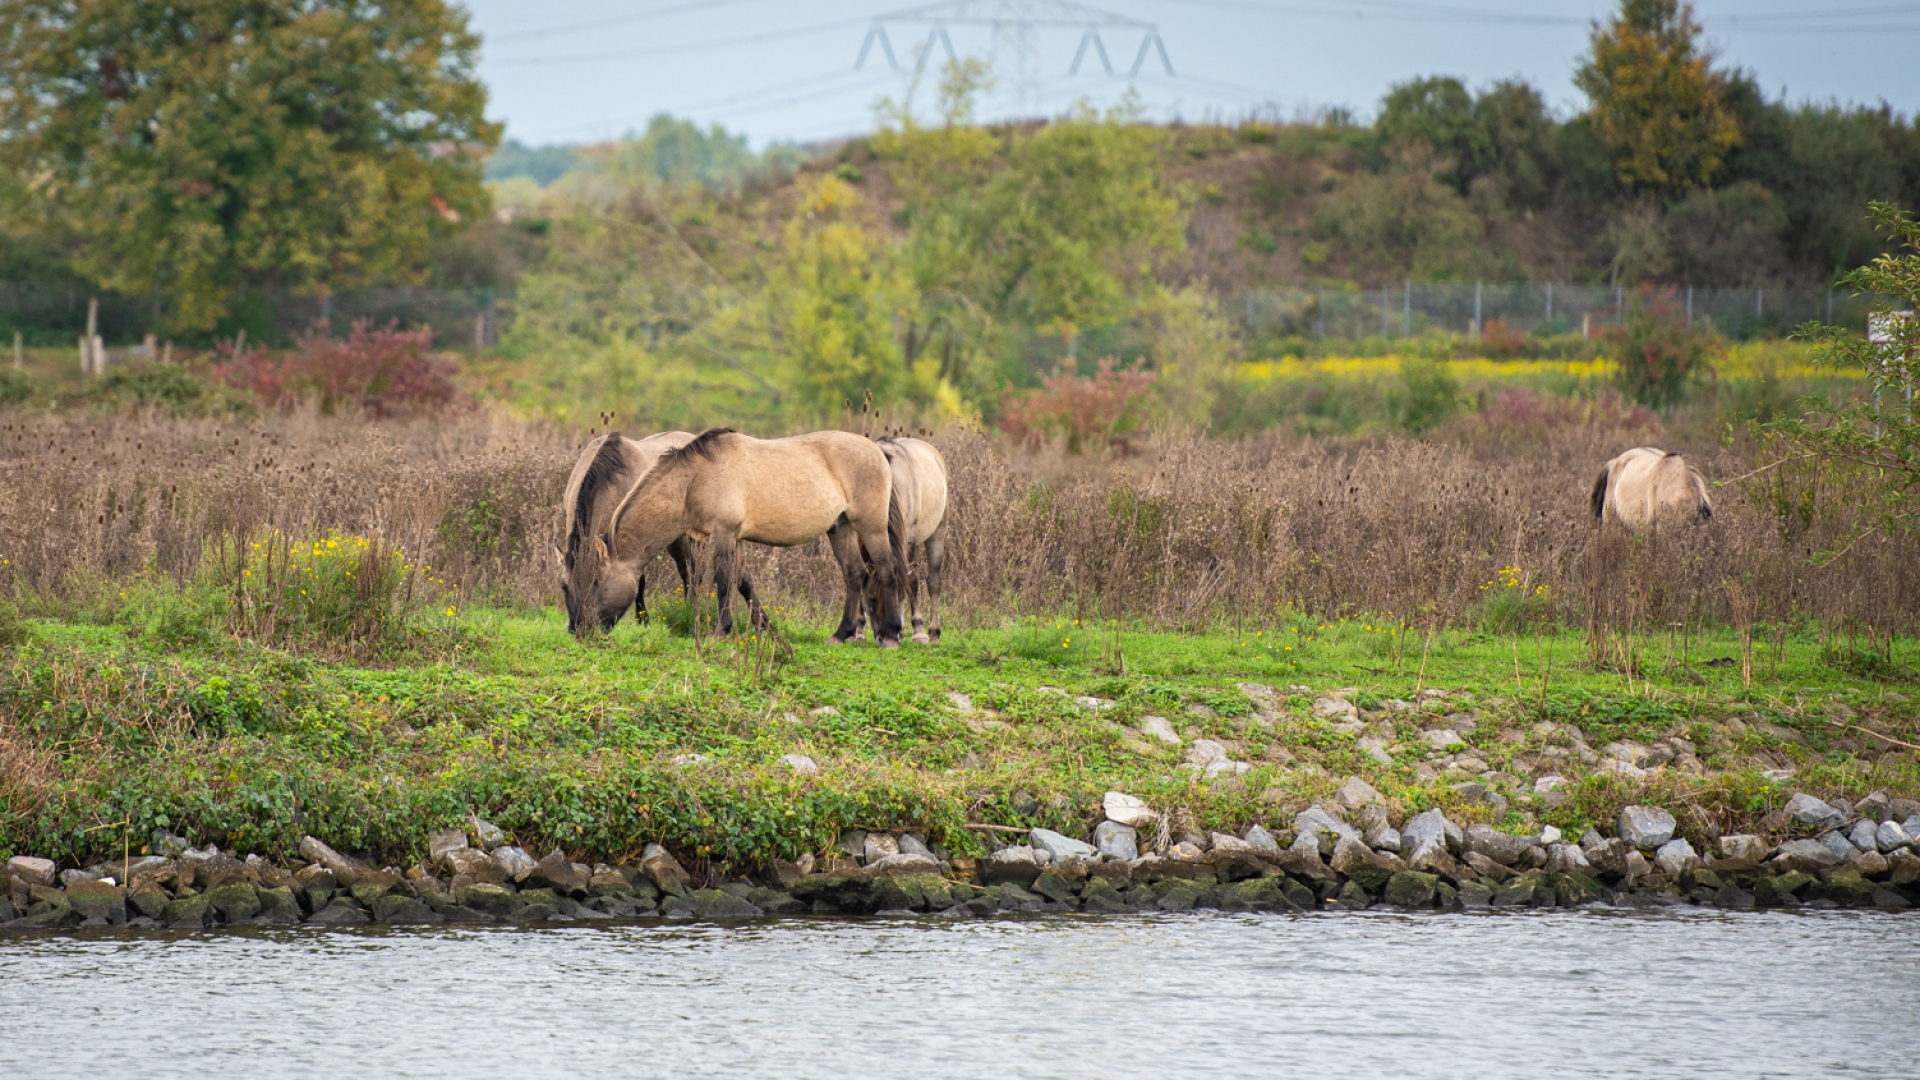 Want to spot wild animals on the banks of the Grensmaas?